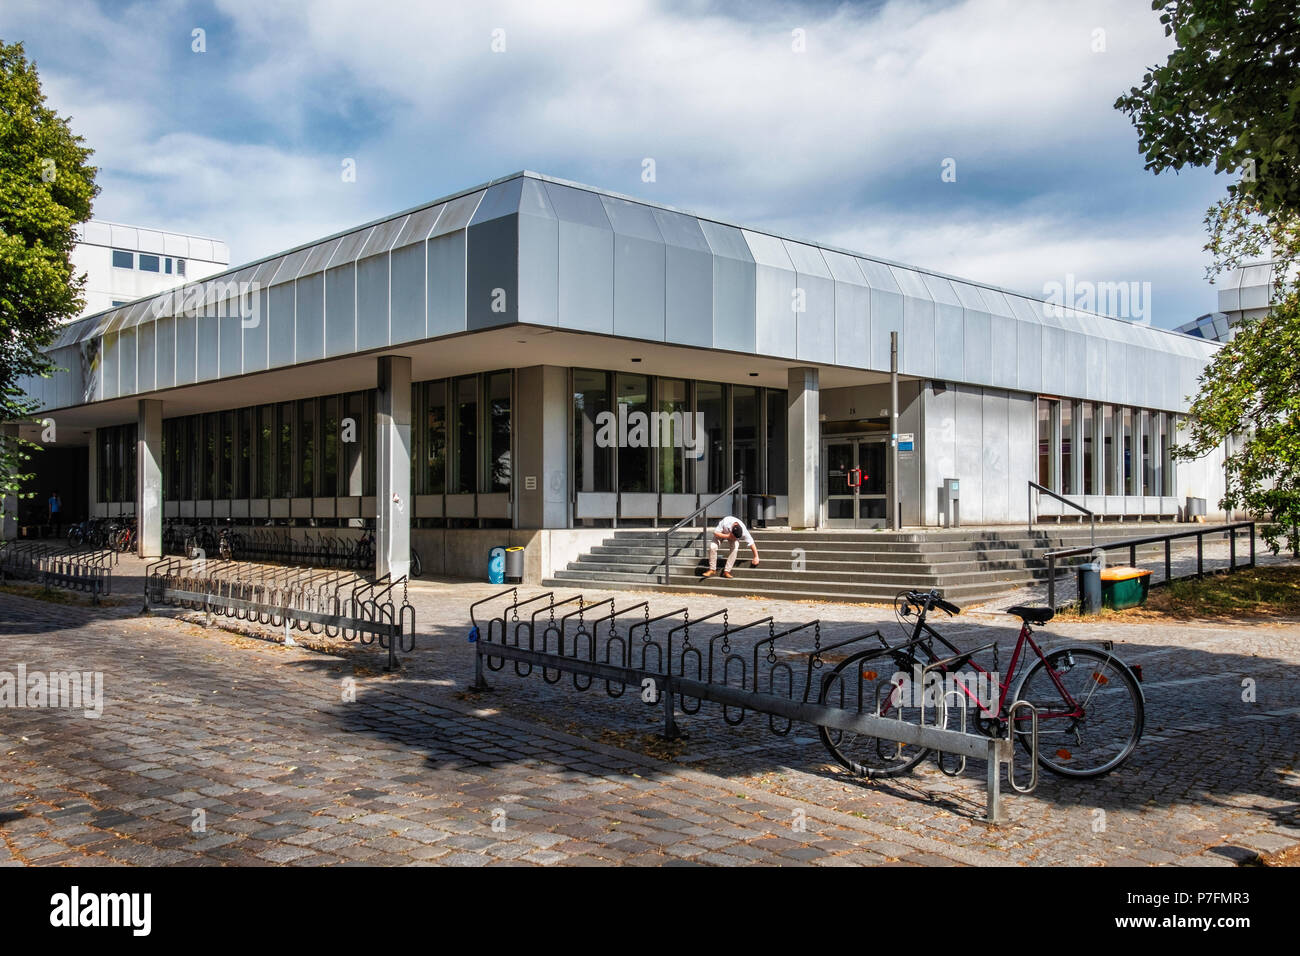 Berlin, FU Freie Universität,Free University campus buildings - Modern complex Rust and silver exterior Stock Photo